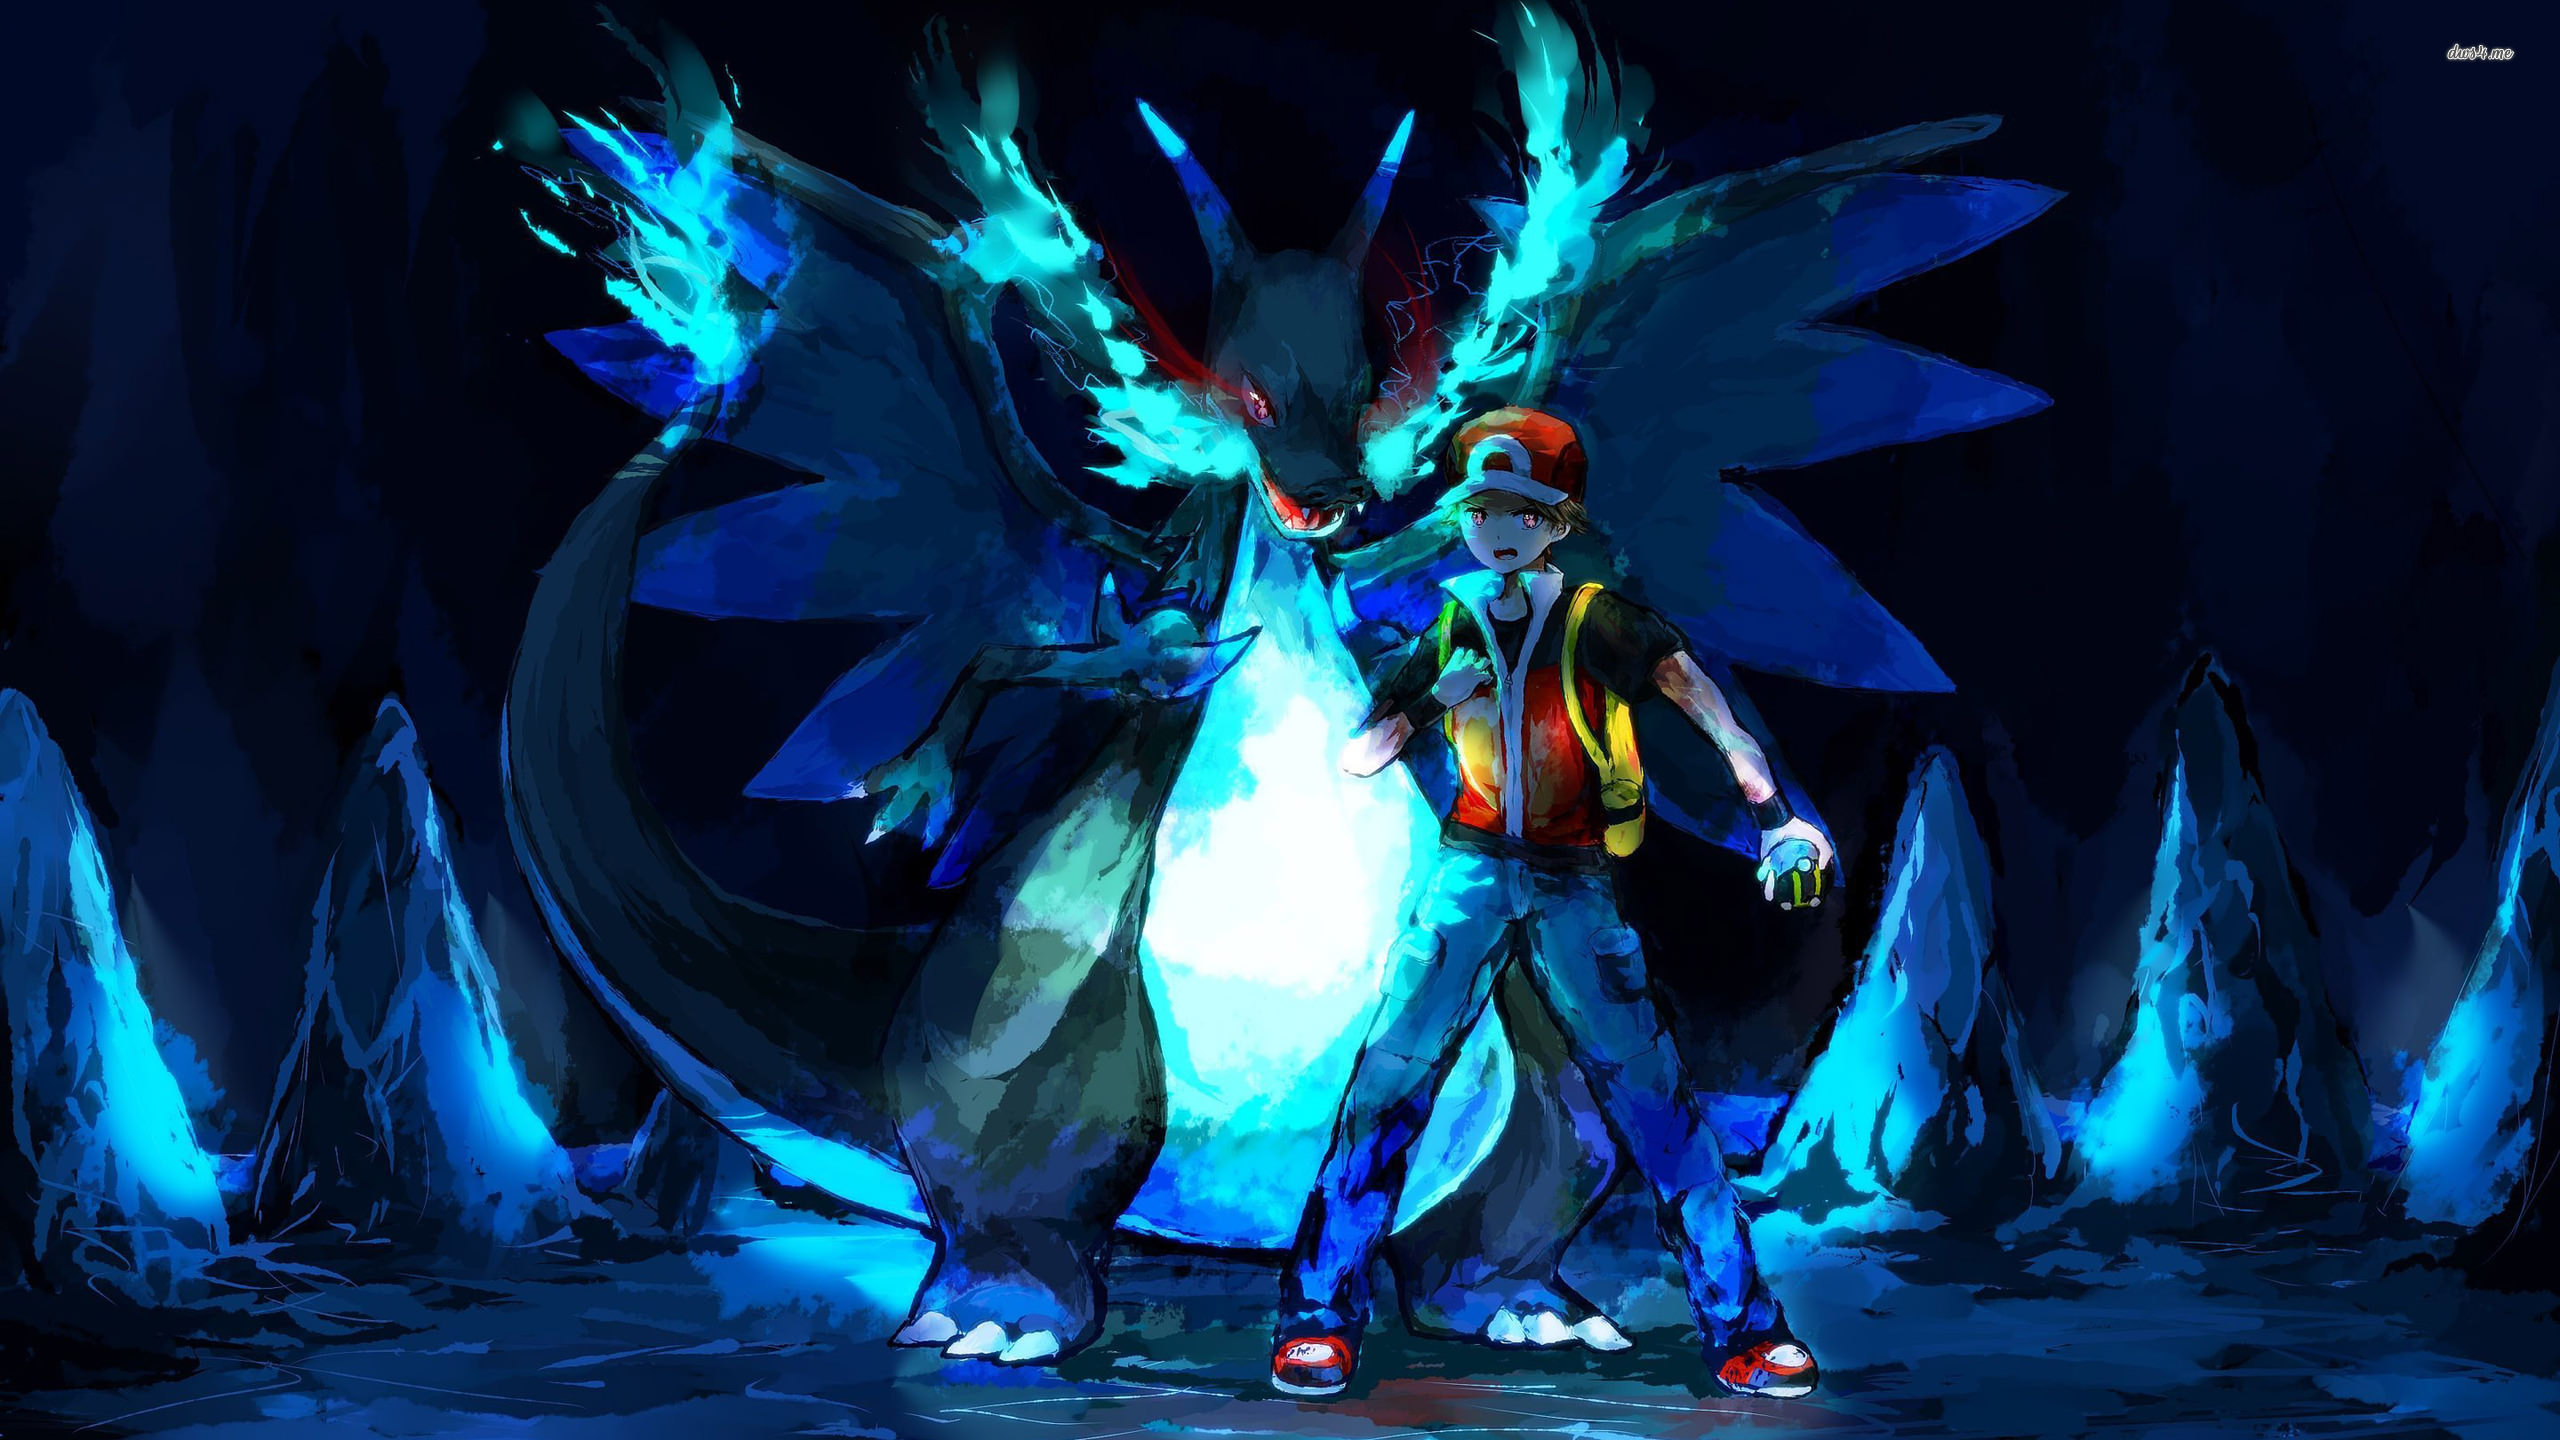 35 Crazy Pokemon Backgrounds Wallpapers Images